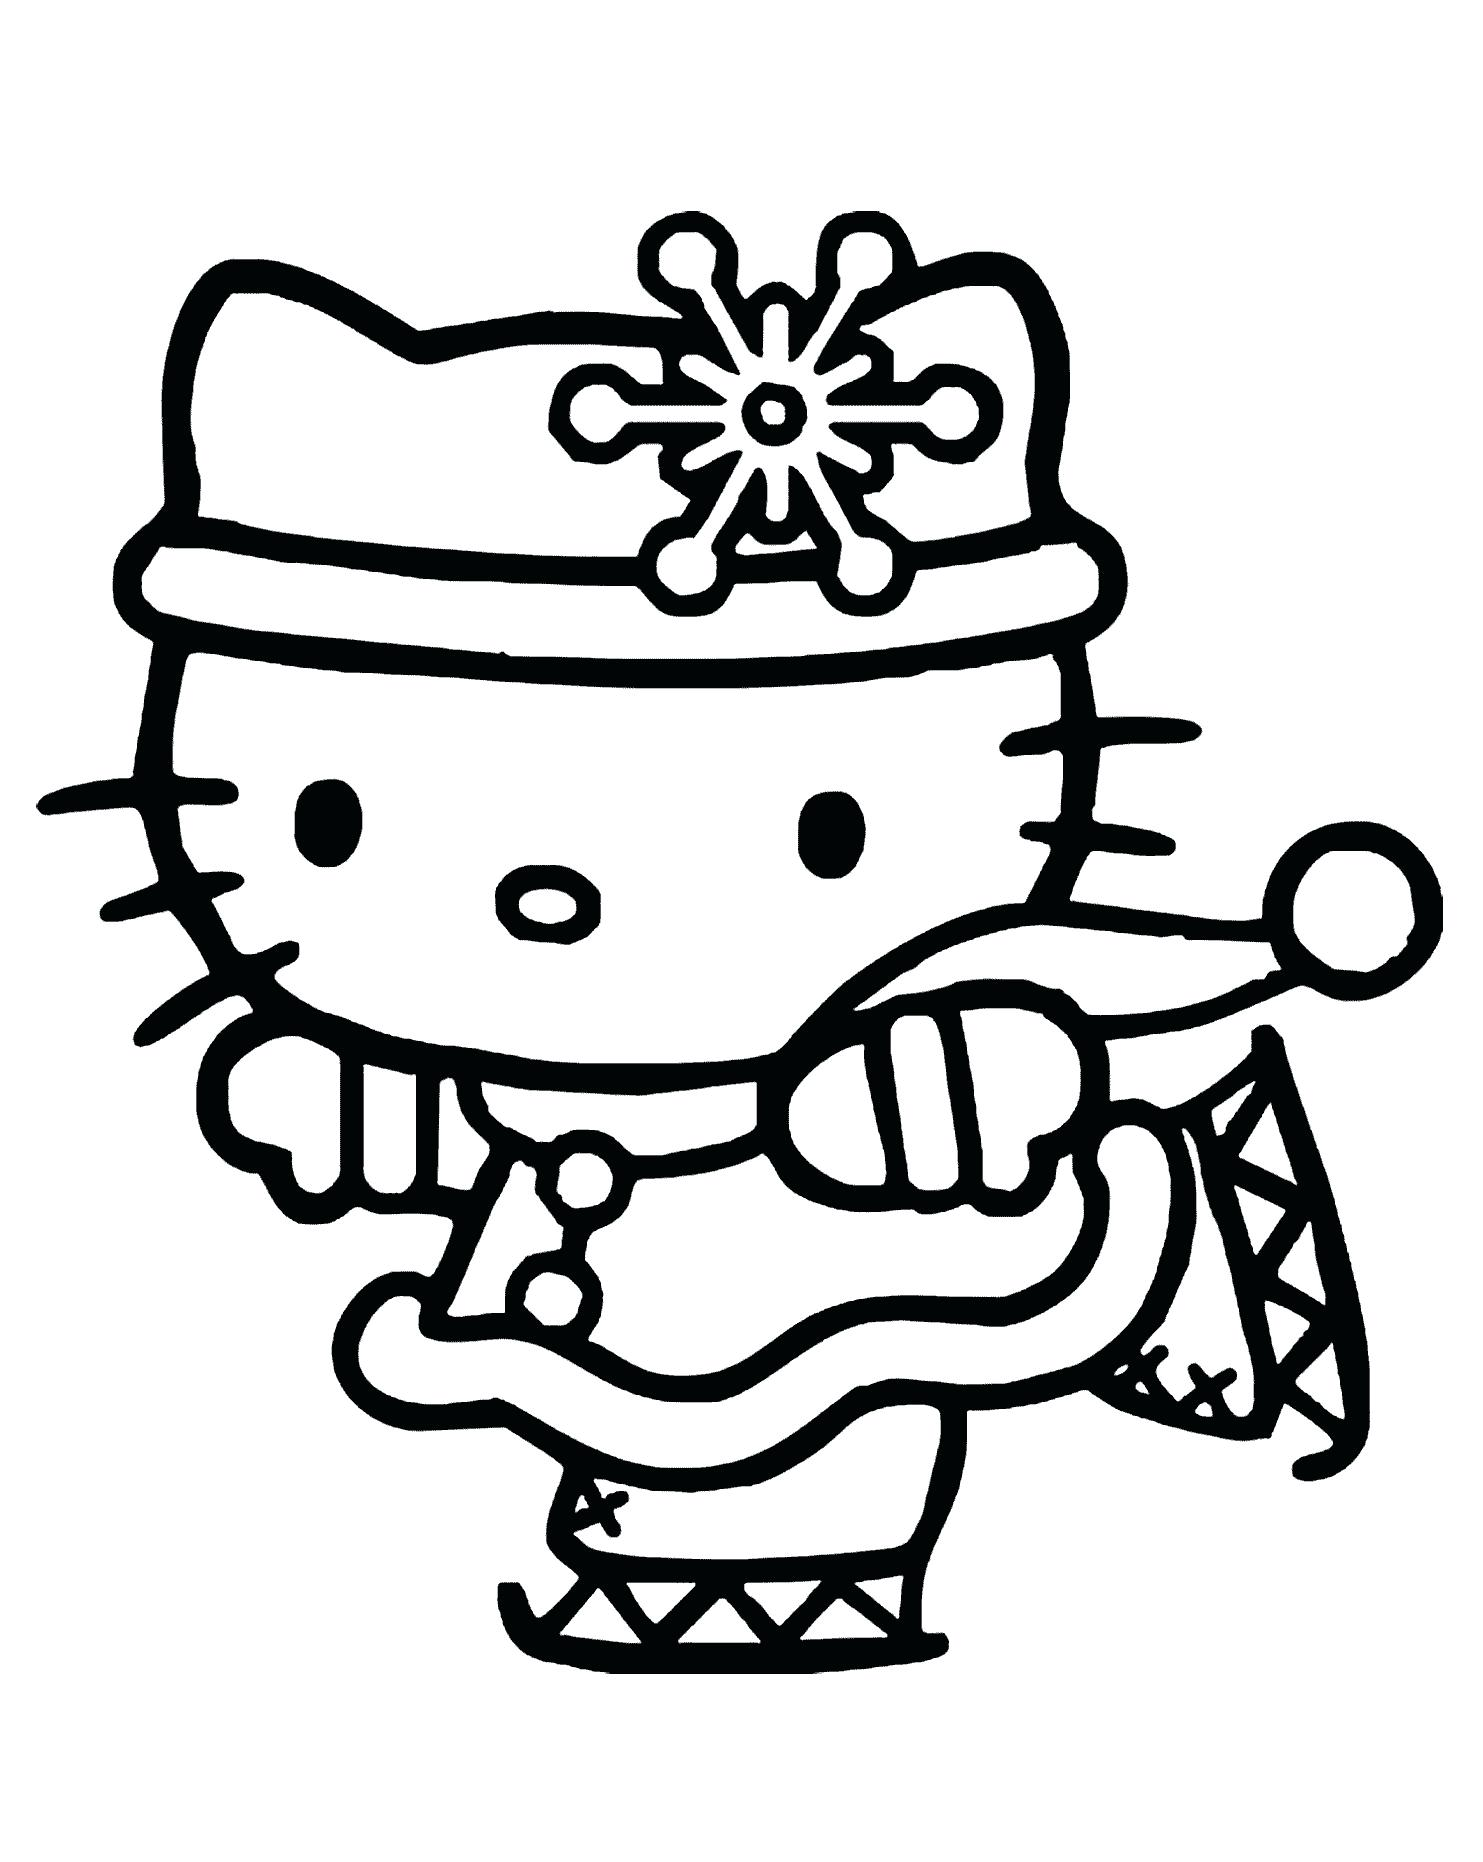 1483x1862 Coloring Pages Extraordinary January Coloring Sheets. Winter